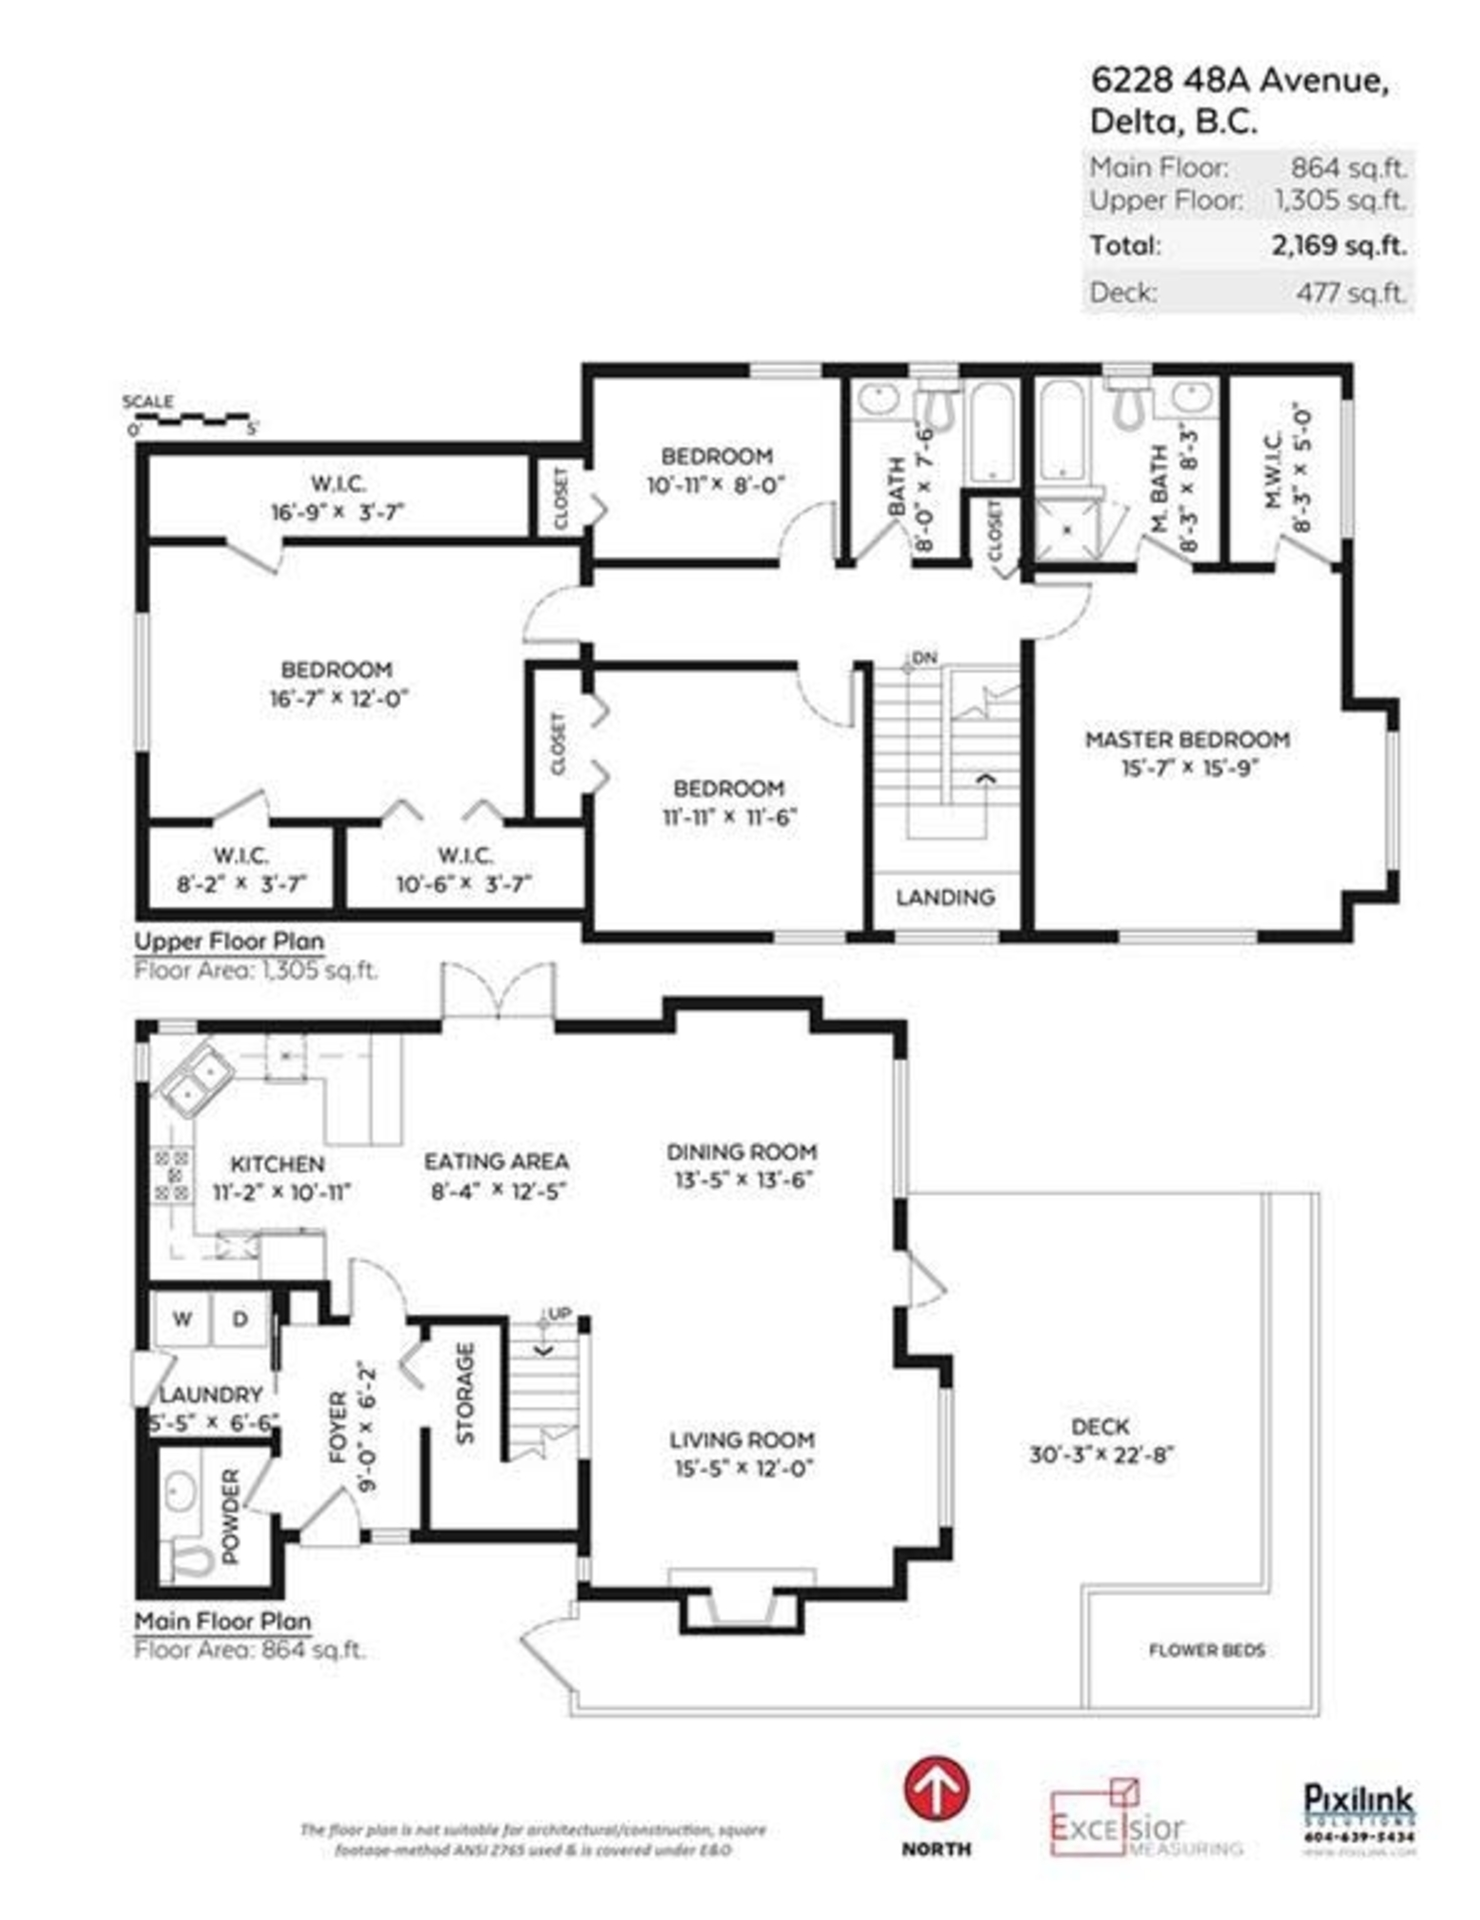 image-262104280-16.jpg at 6228 48a Avenue, Holly, Ladner